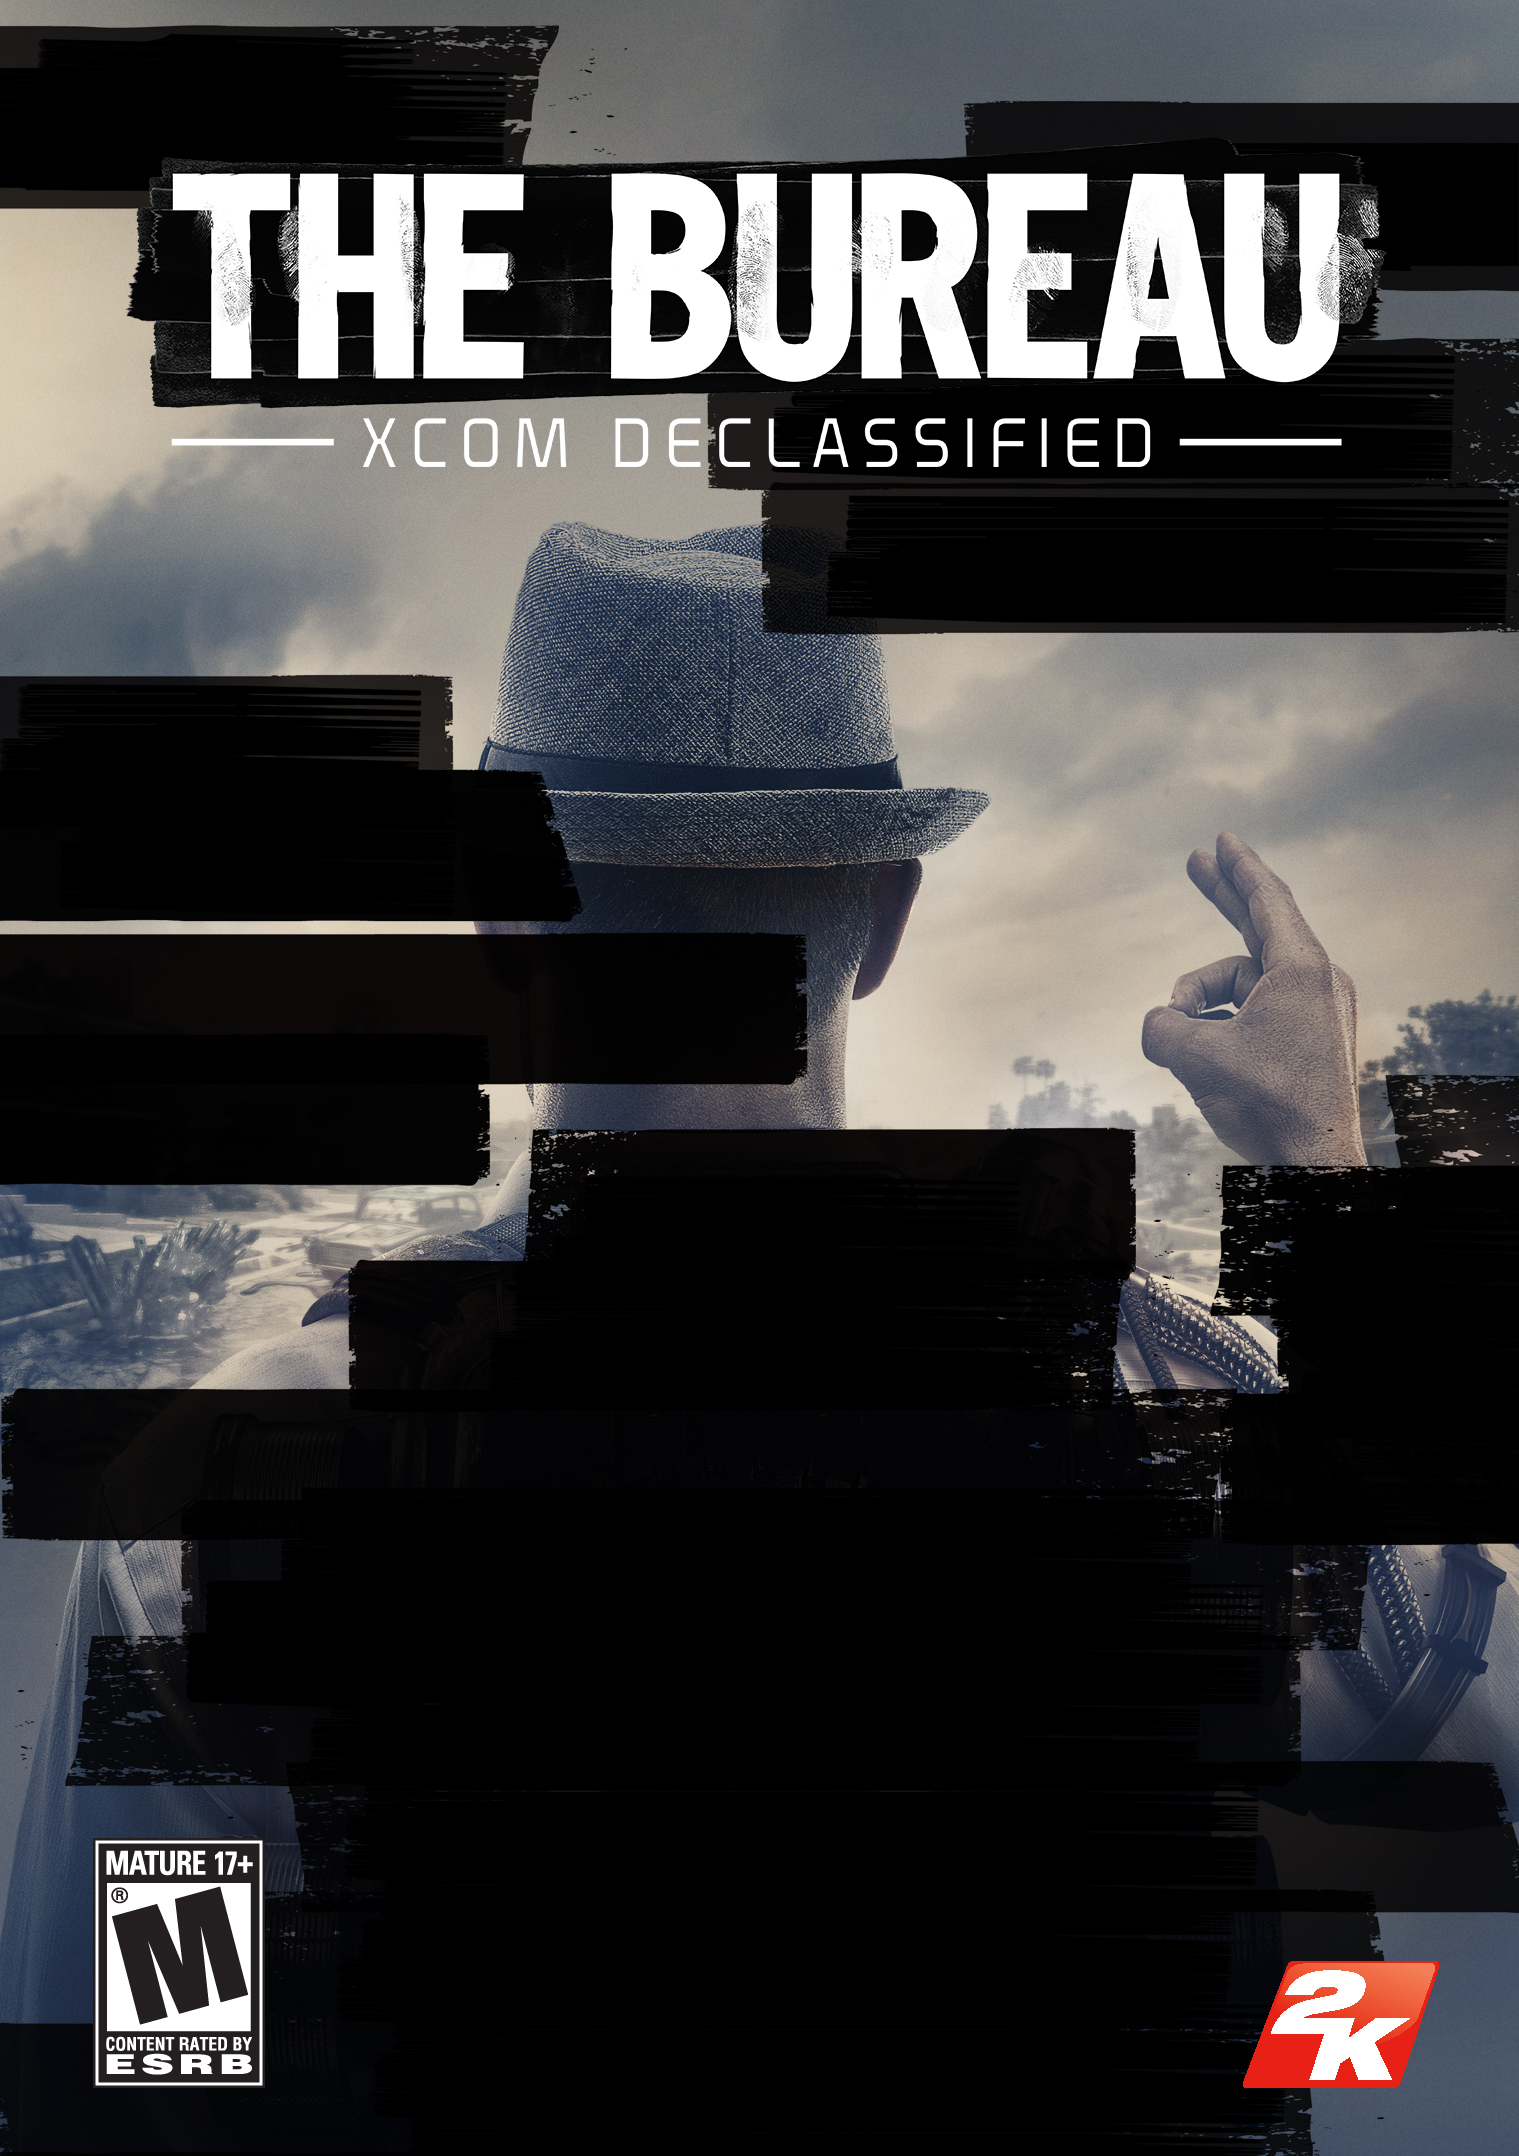 The Bureau: XCOM Declassified is a third-person tactical shooter that tells the Cold War-era origin story of the XCOM organization and is available on August 20, 2013 in North America. (Photo: Business Wire)